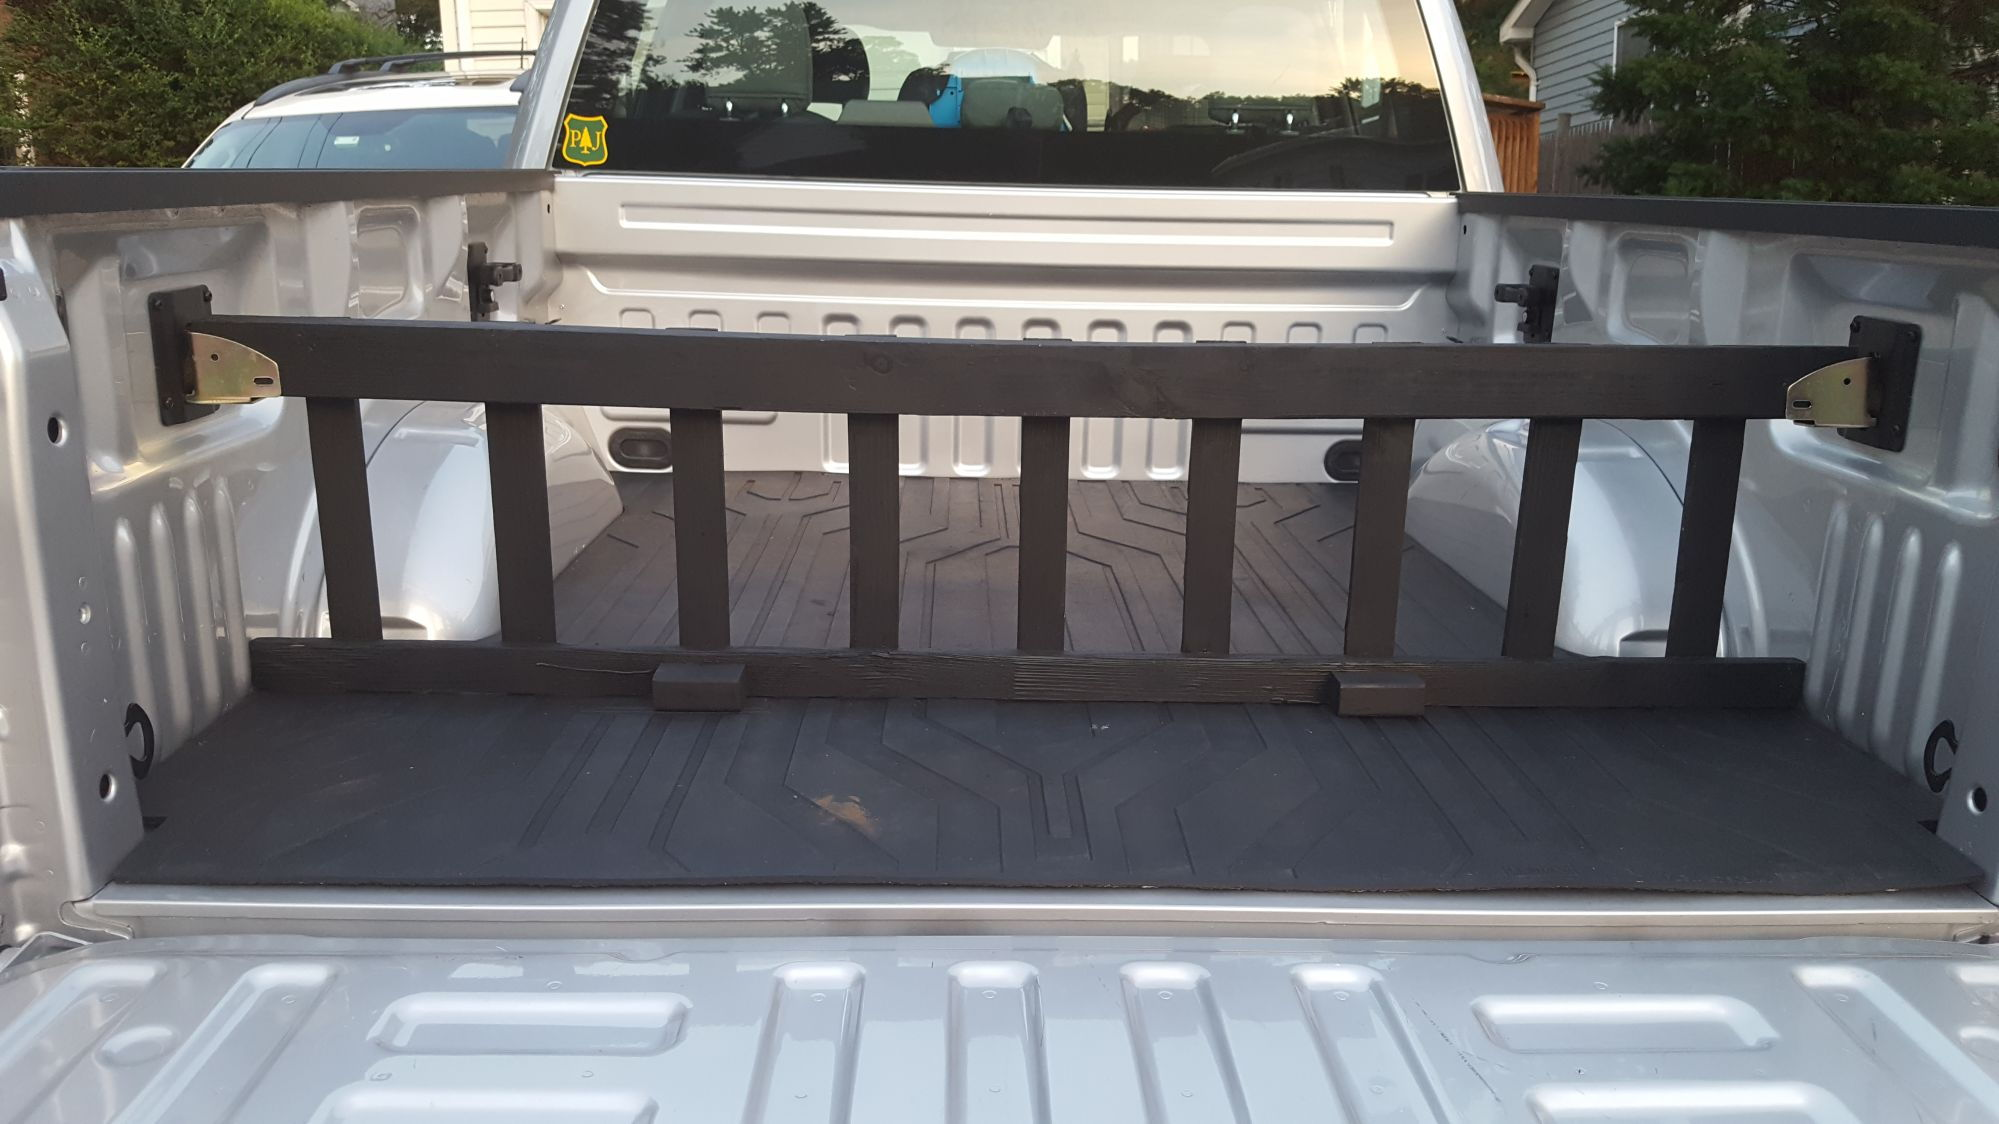 Diy Bed Divider Page 4 Ford F150 Forum Community Of